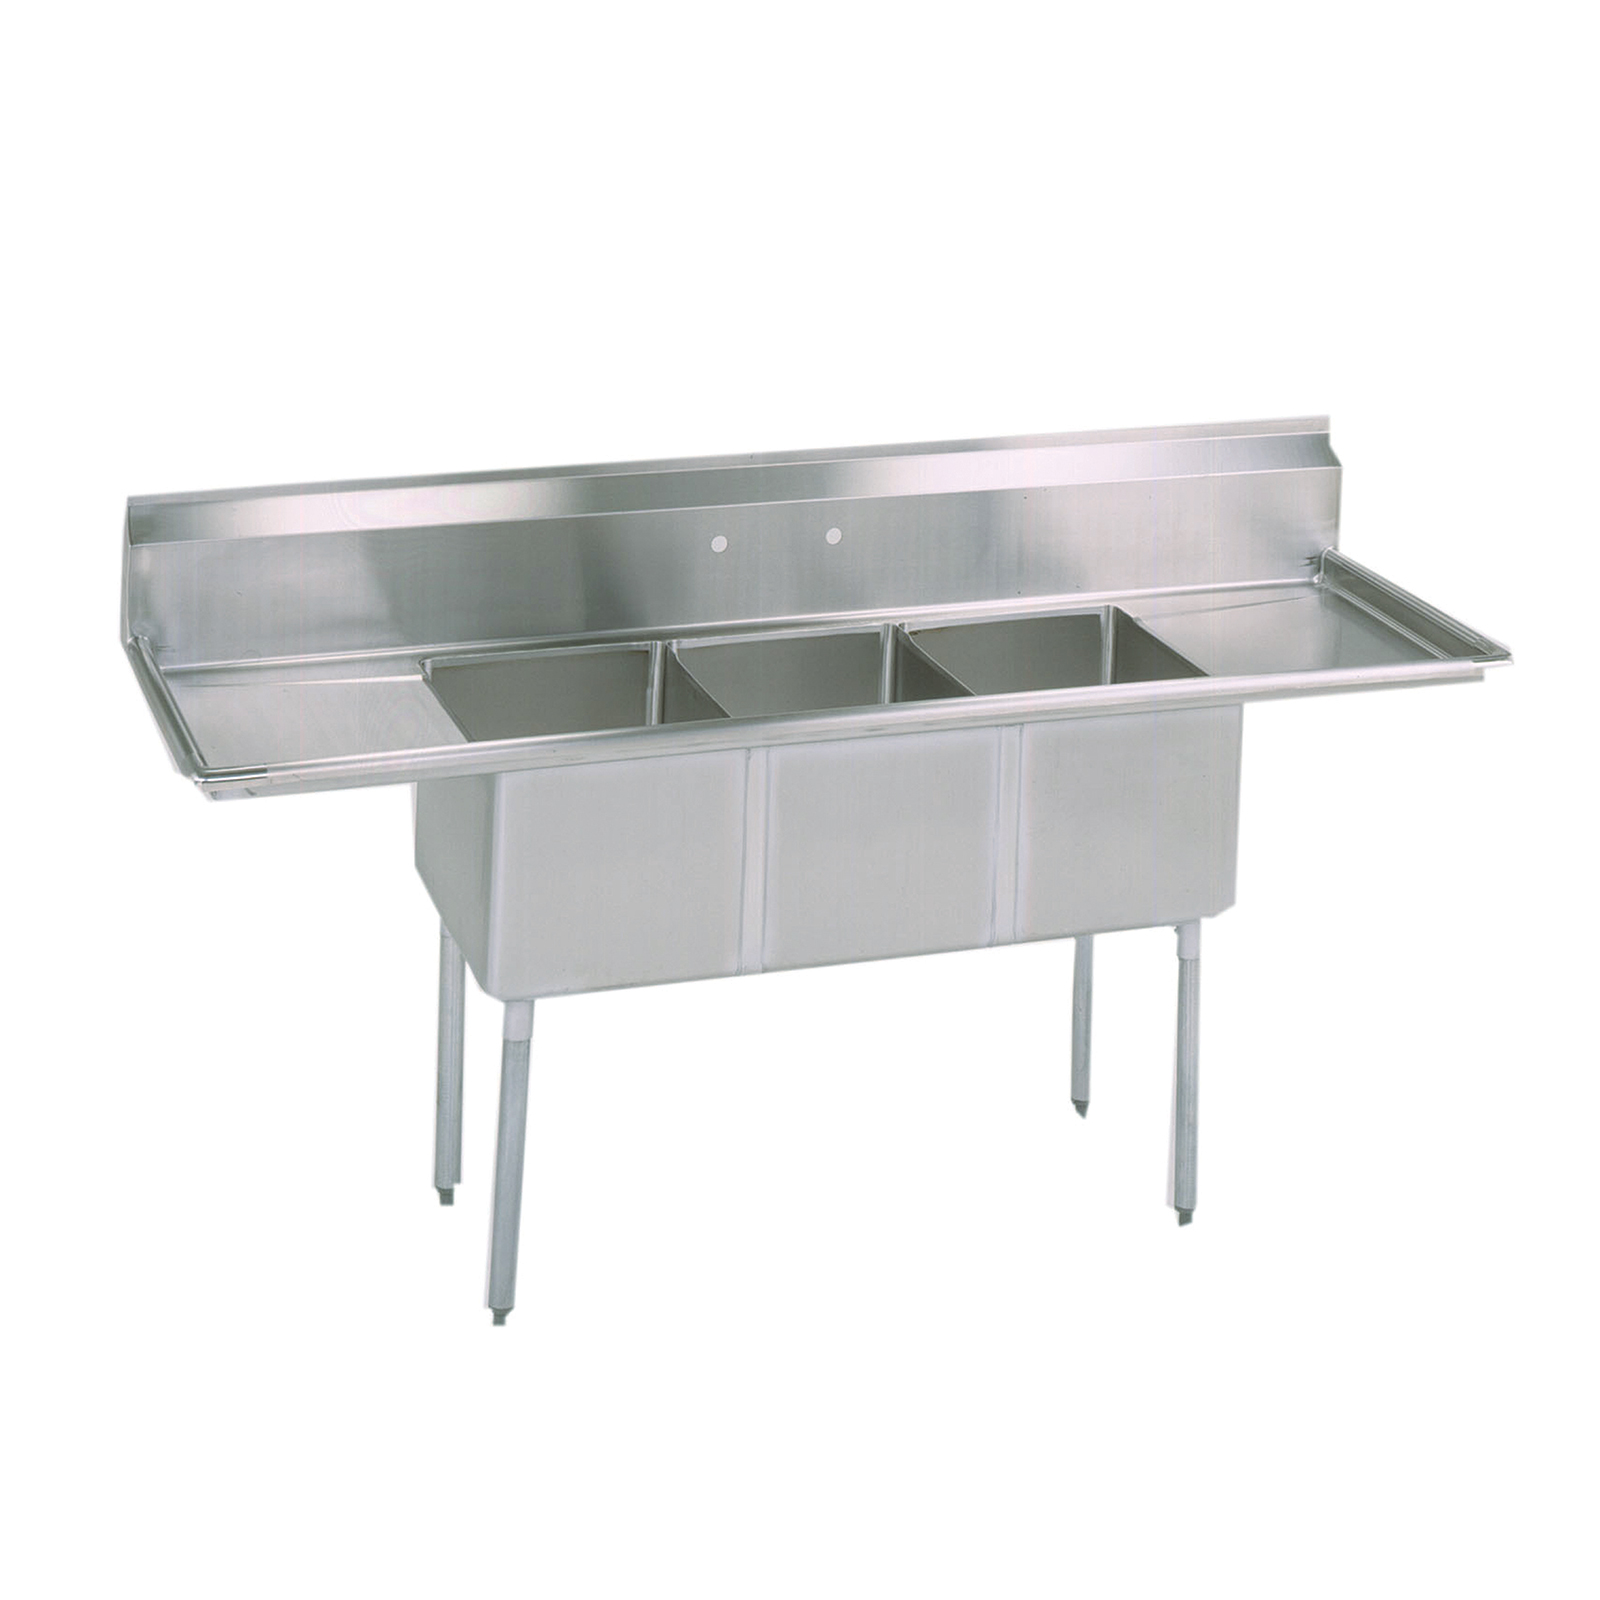 BK Resources BKS-3-1824-14-18TS sink, (3) three compartment